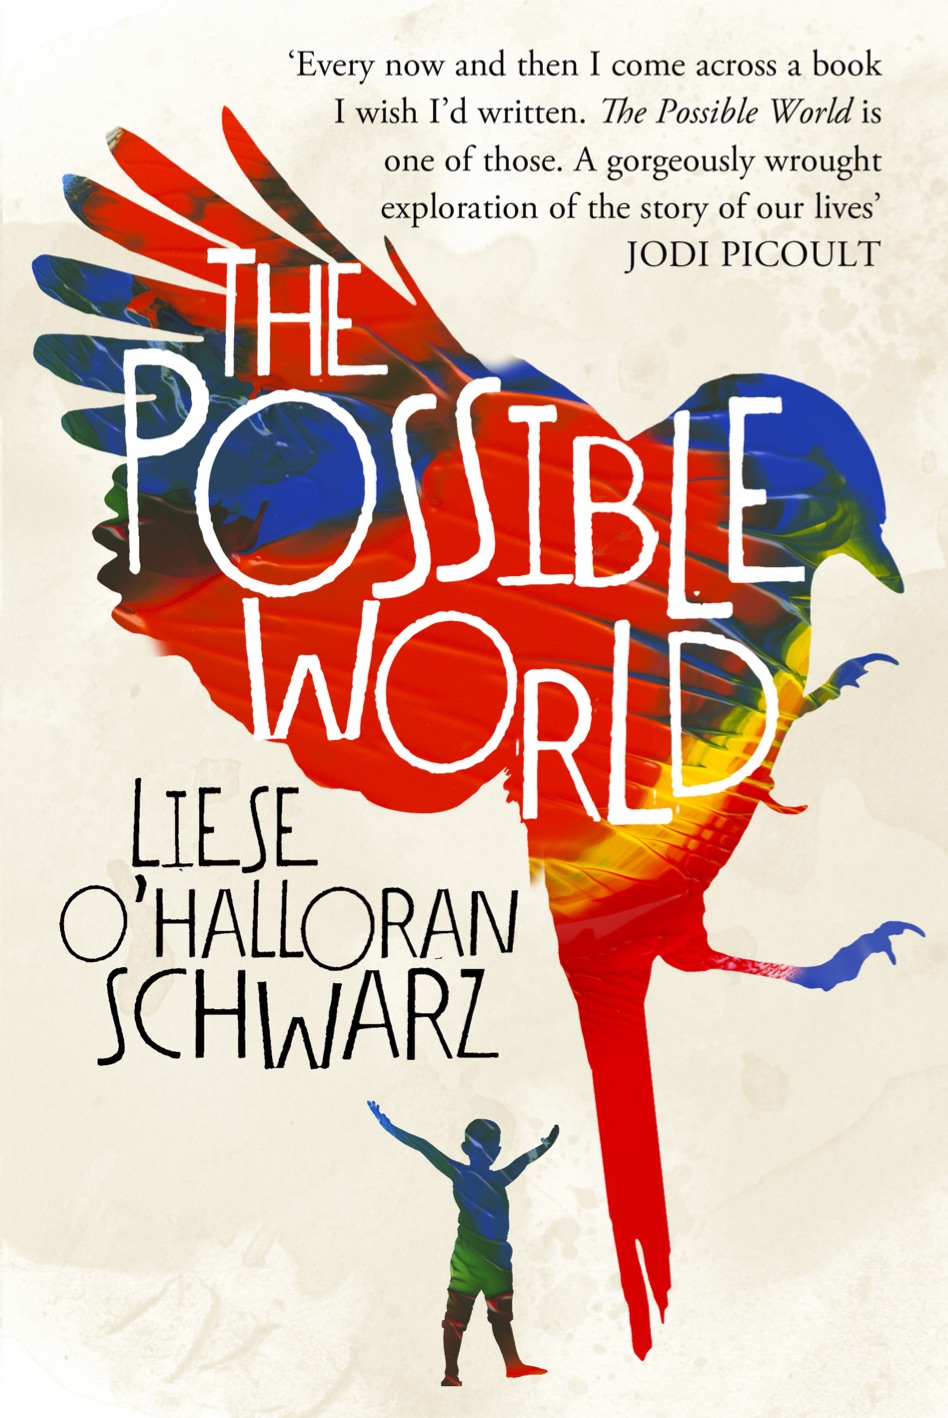 the possible world hb.jpg